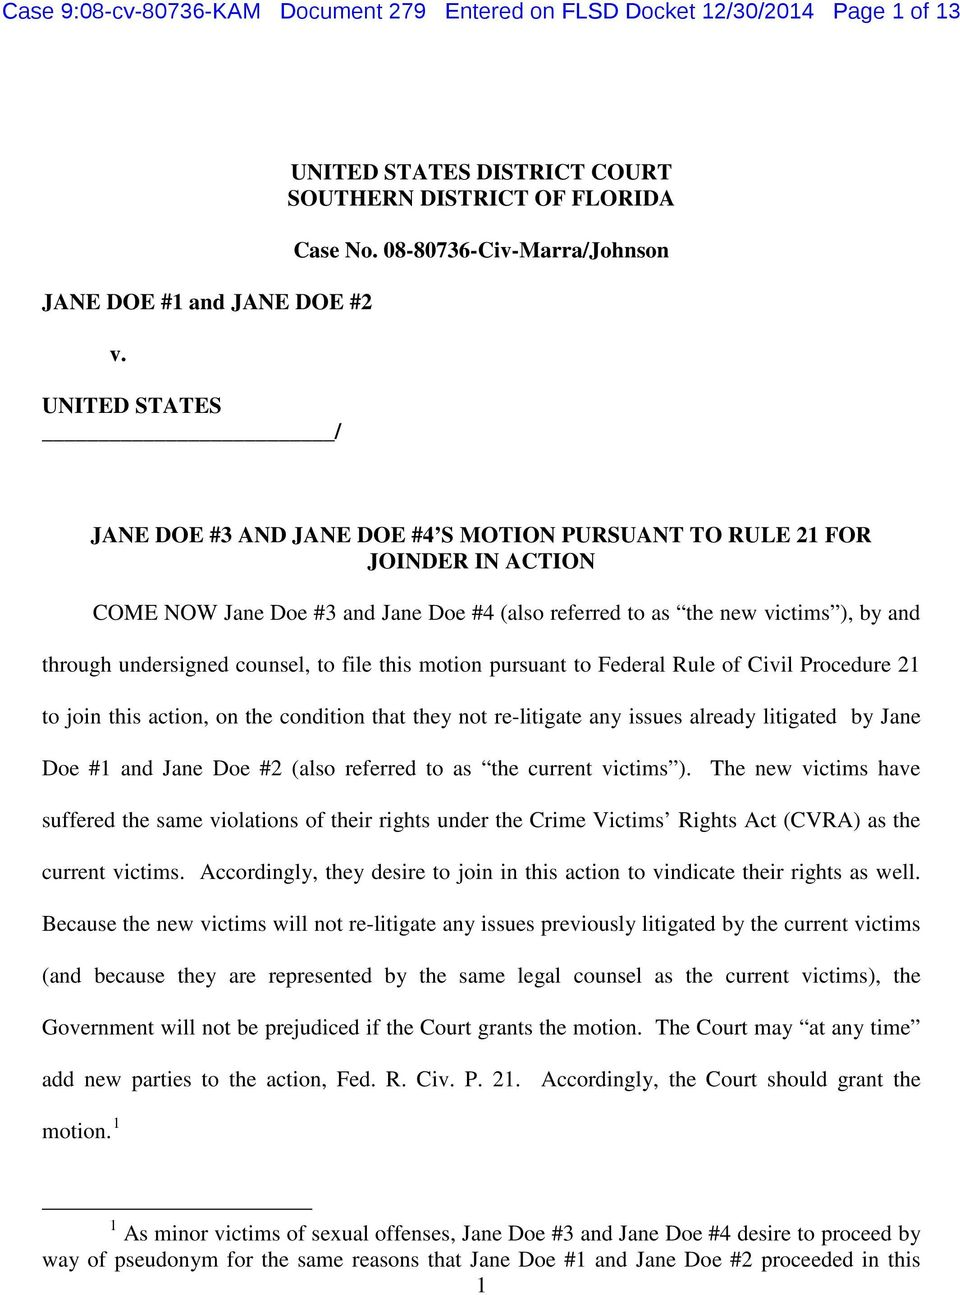 undersigned counsel, to file this motion pursuant to Federal Rule of Civil Procedure 21 to join this action, on the condition that they not re-litigate any issues already litigated by Jane Doe #1 and